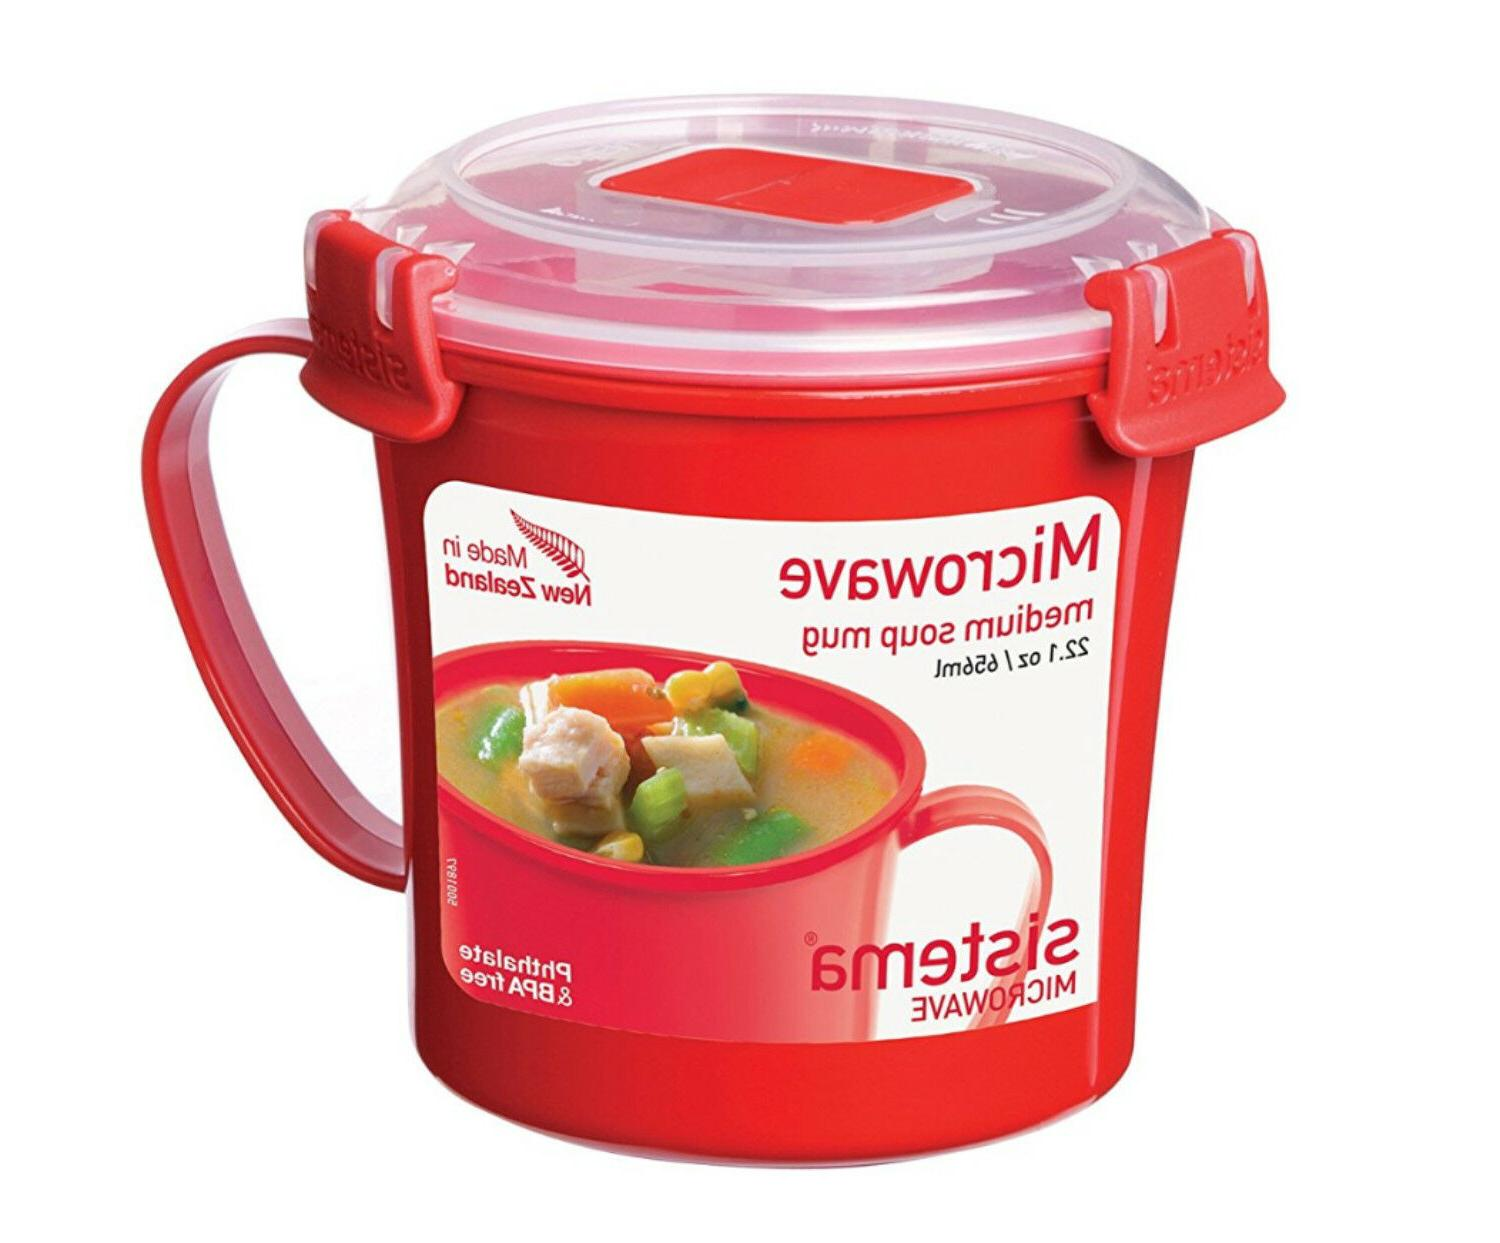 Medium Soup Handle and Vent Microwavable Cup